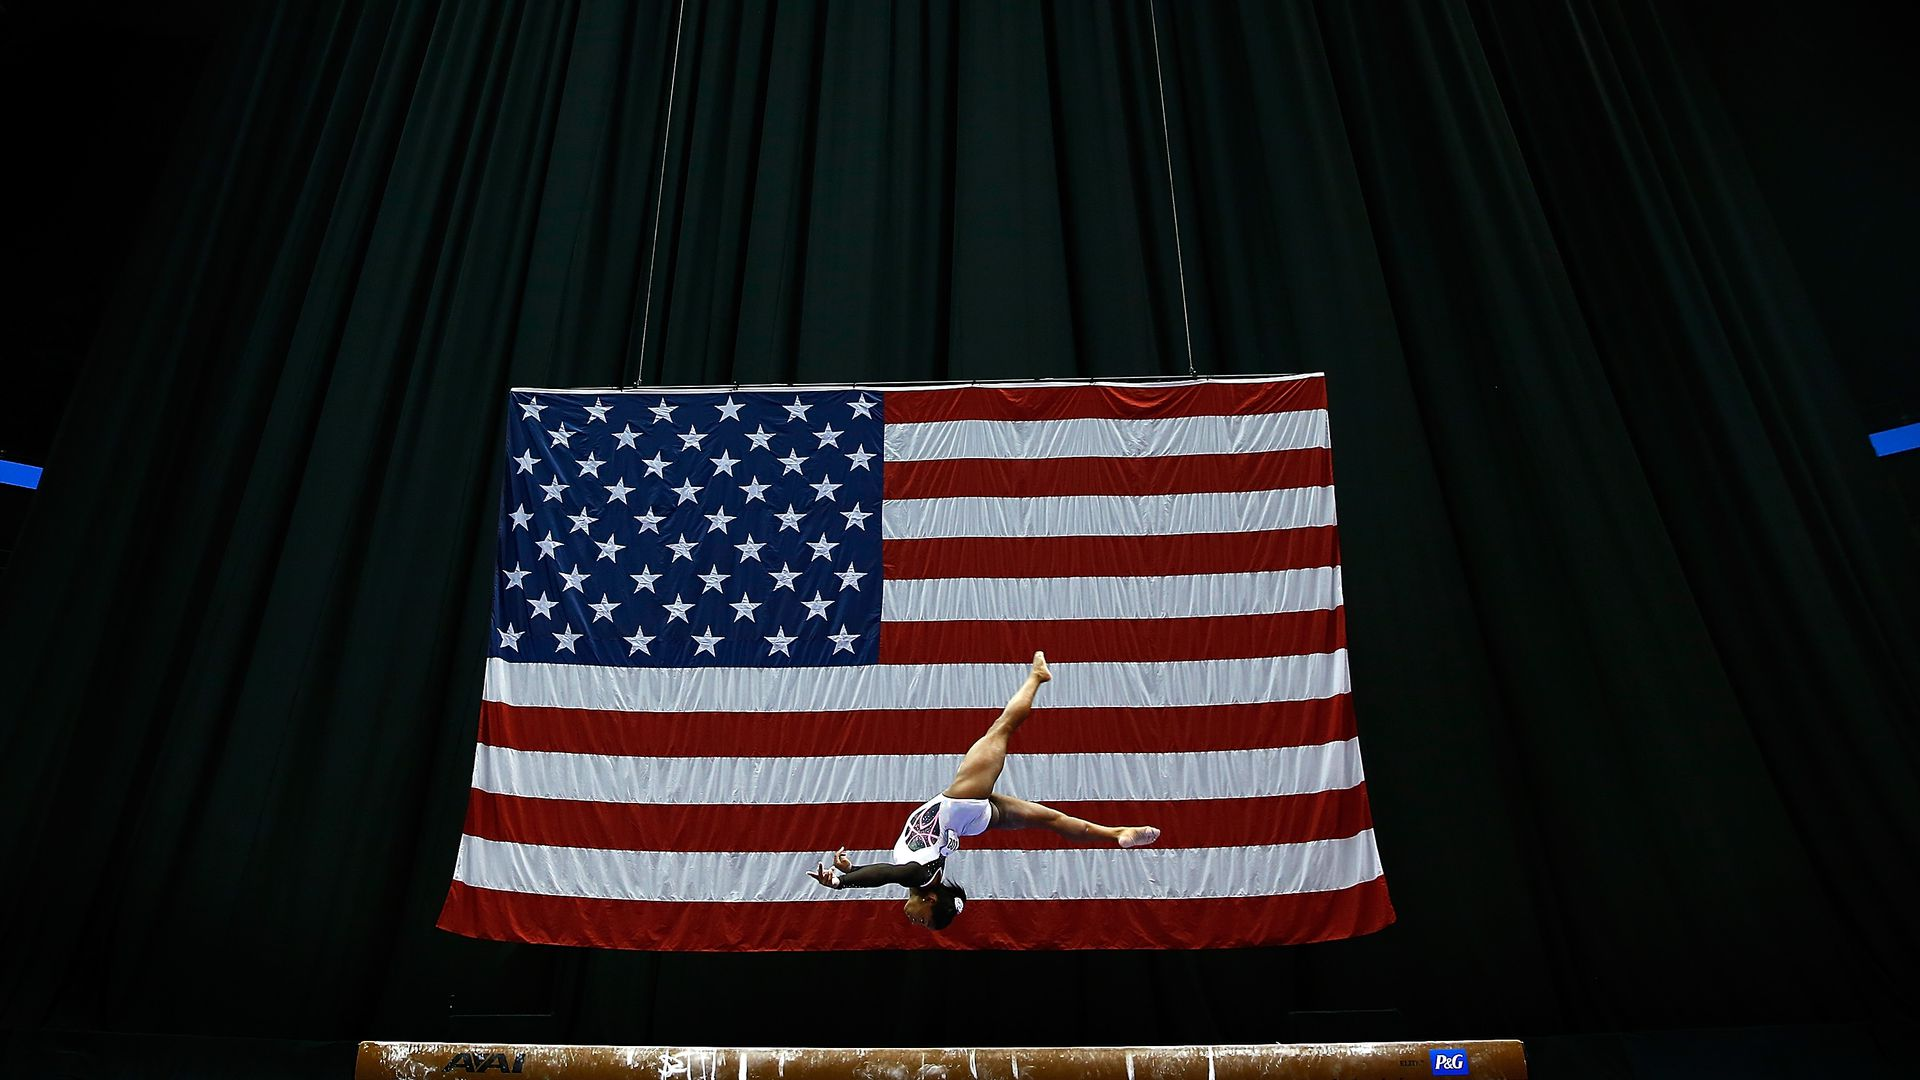 Simone Biles competes on the balance beam during the 2014 P&G Gymnastics Championships at Consol Energy Center on August 21, 2014 in Pittsburgh, Pennsylvania.